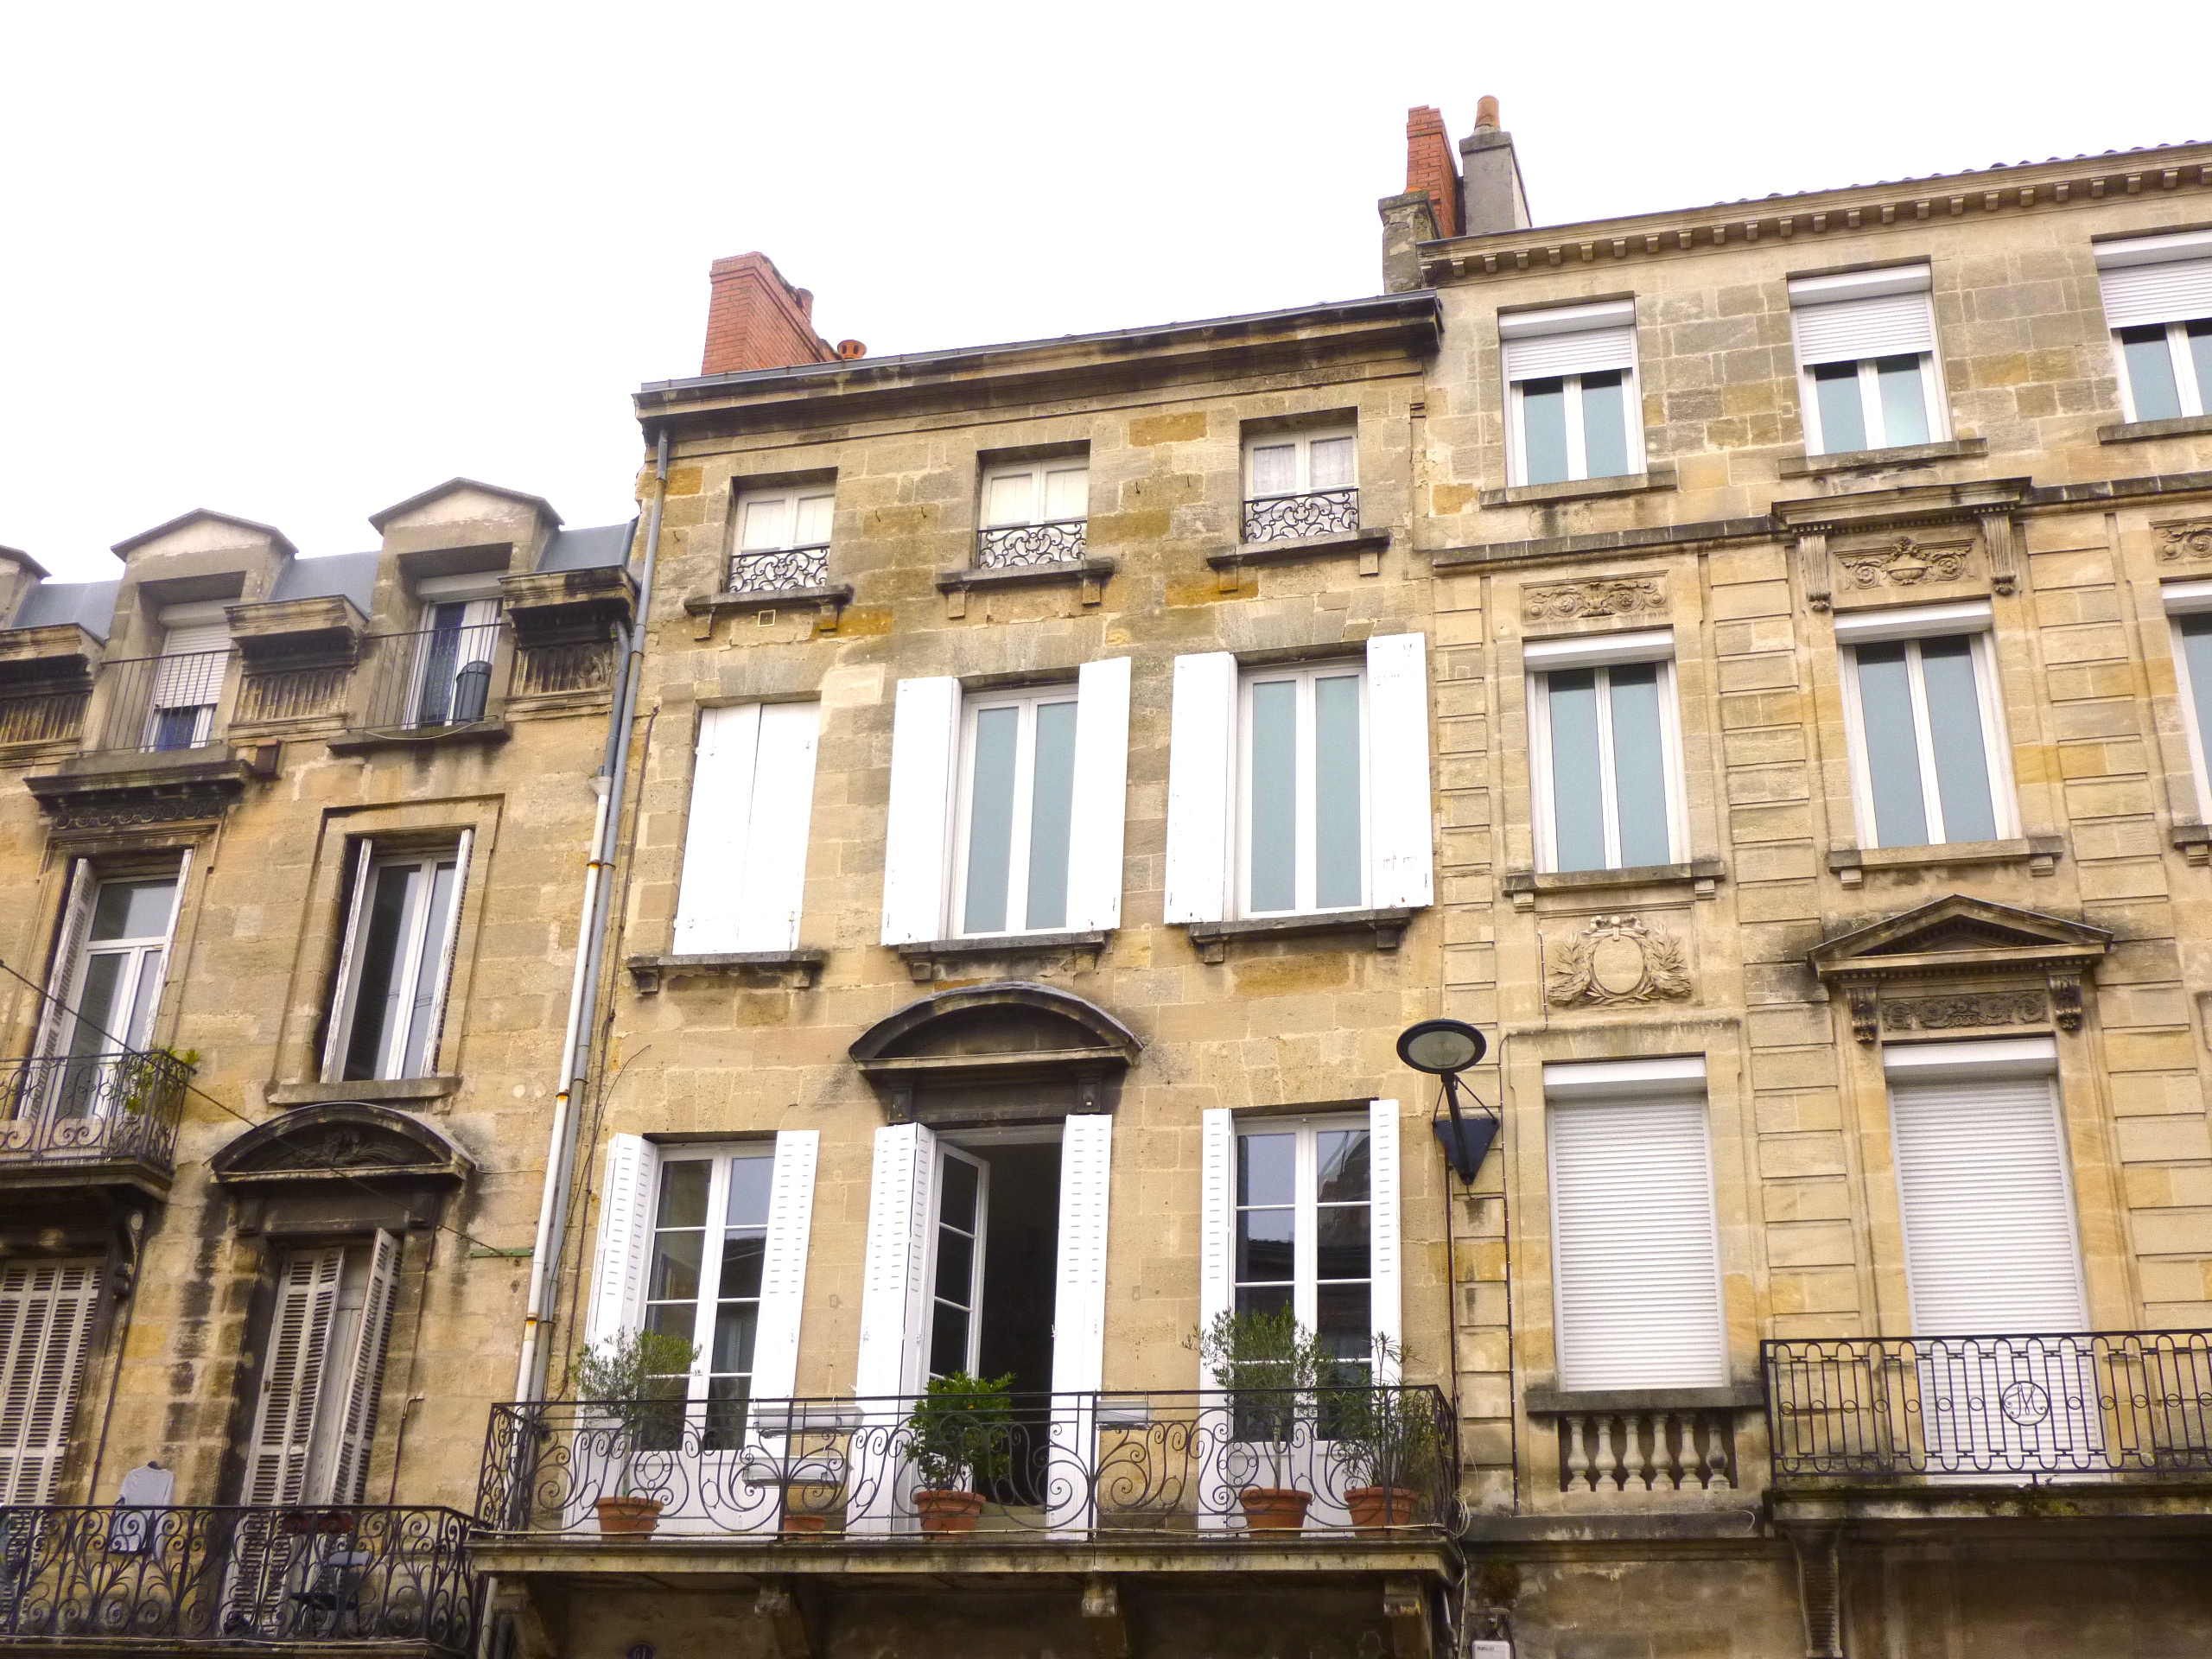 T3 bordeaux fondaud ge agence immobili re jonqu res d 39 oriola for Appartement bordeaux fondaudege